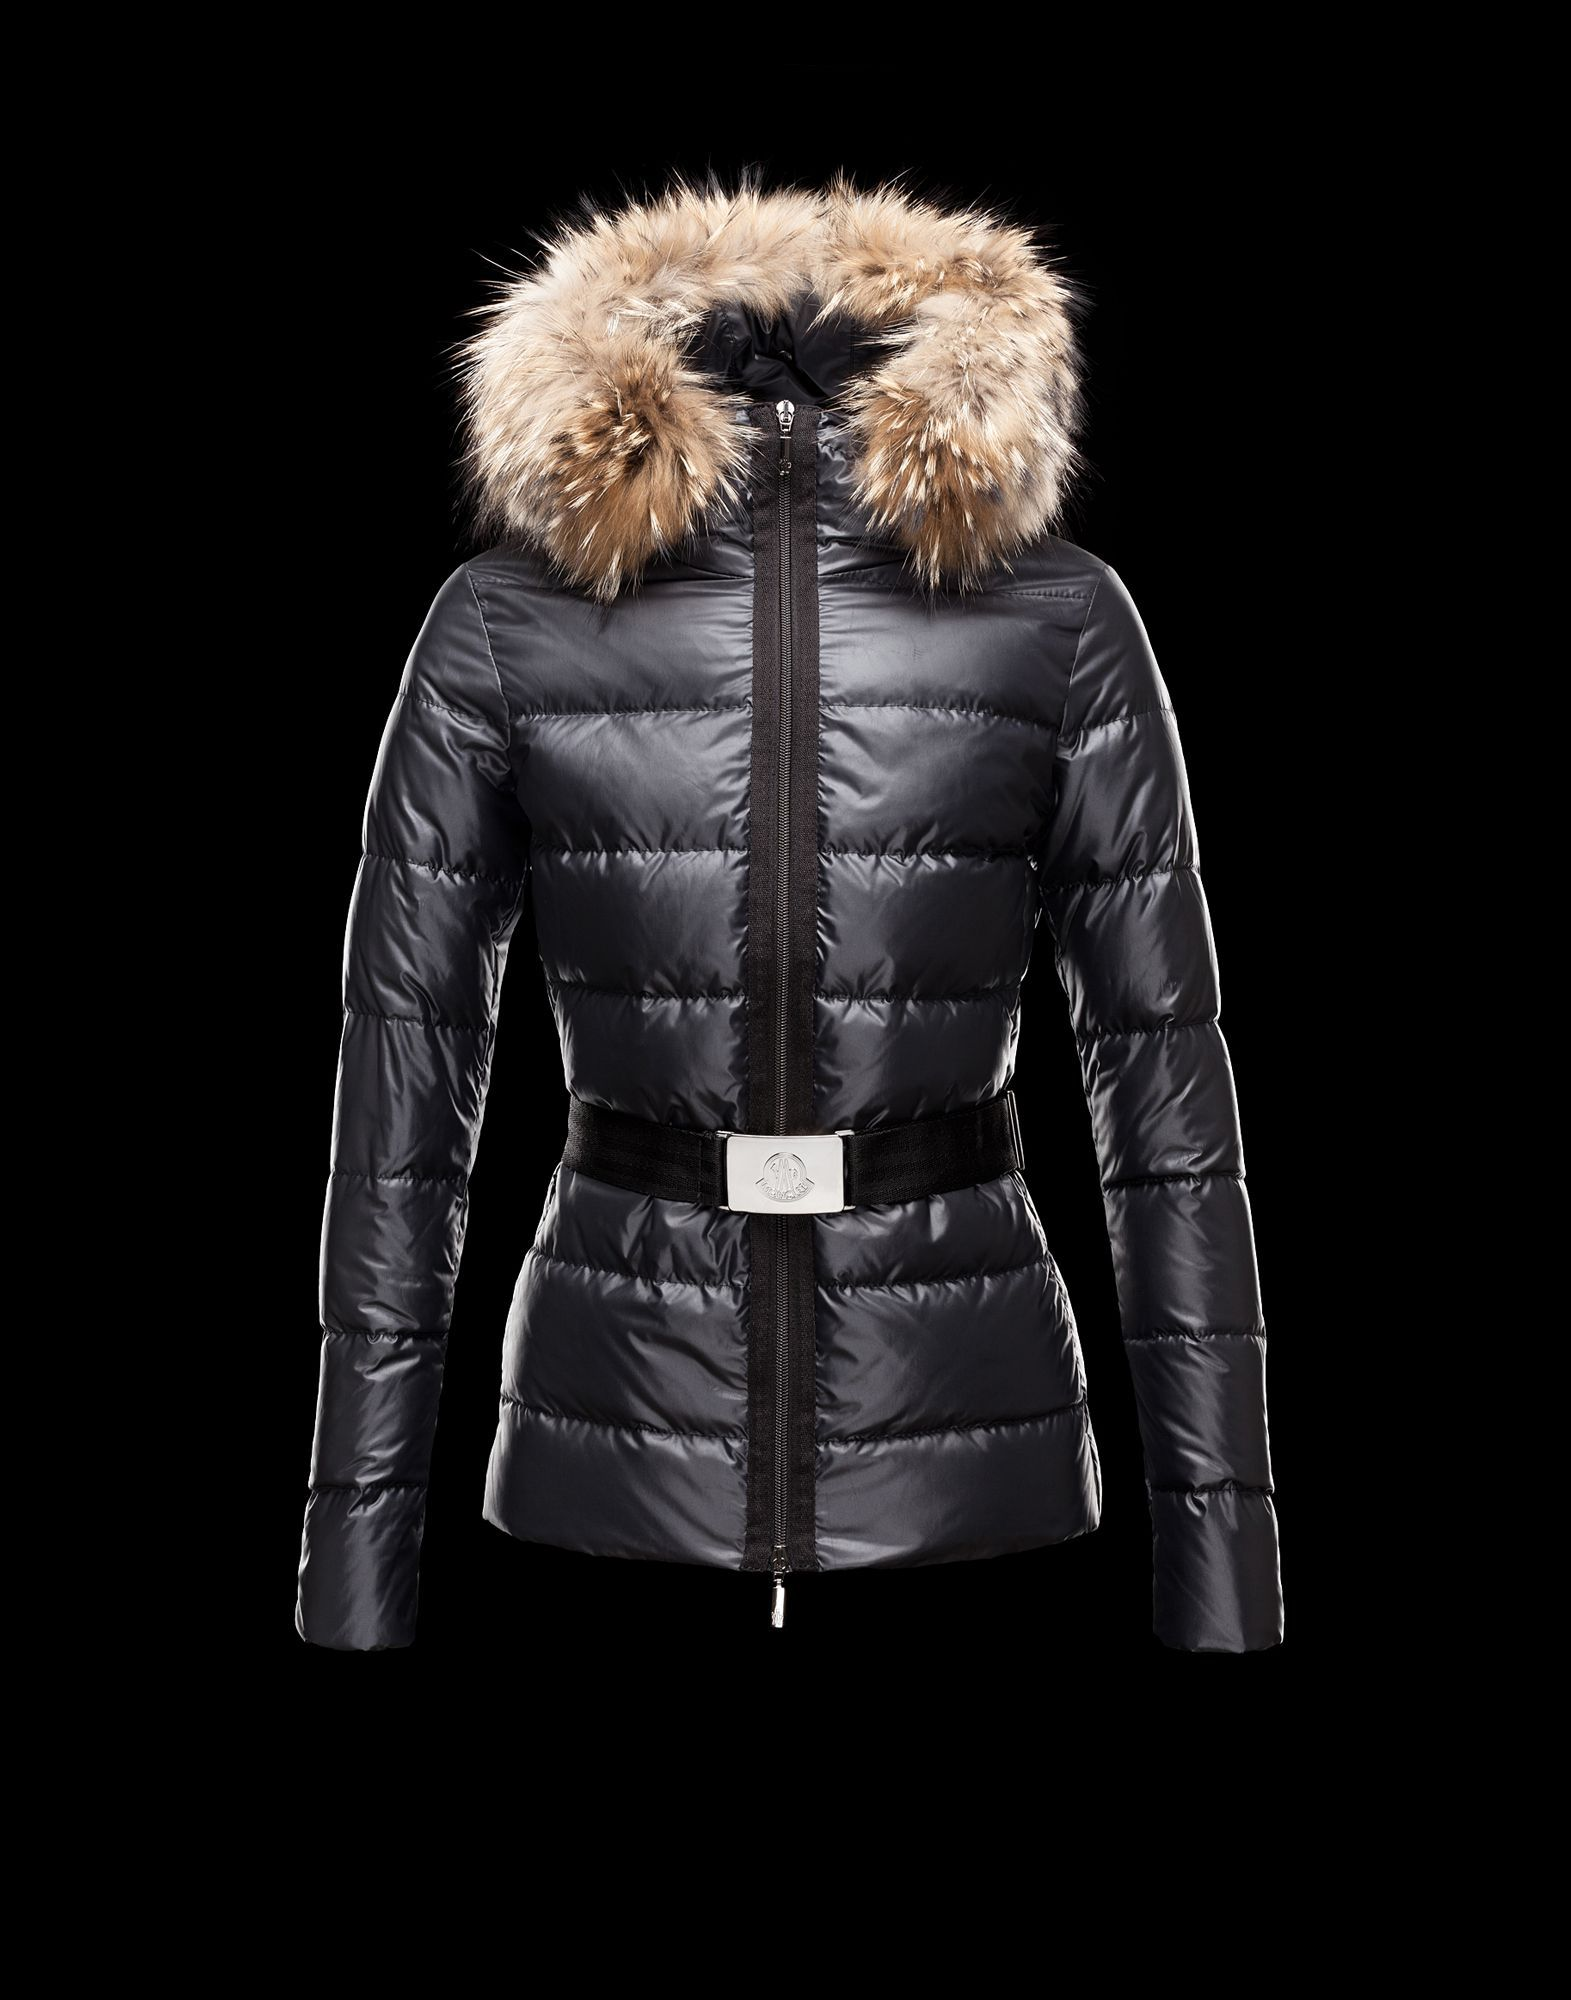 Moncler 2013 Womens Jacket Angers Black for Sale